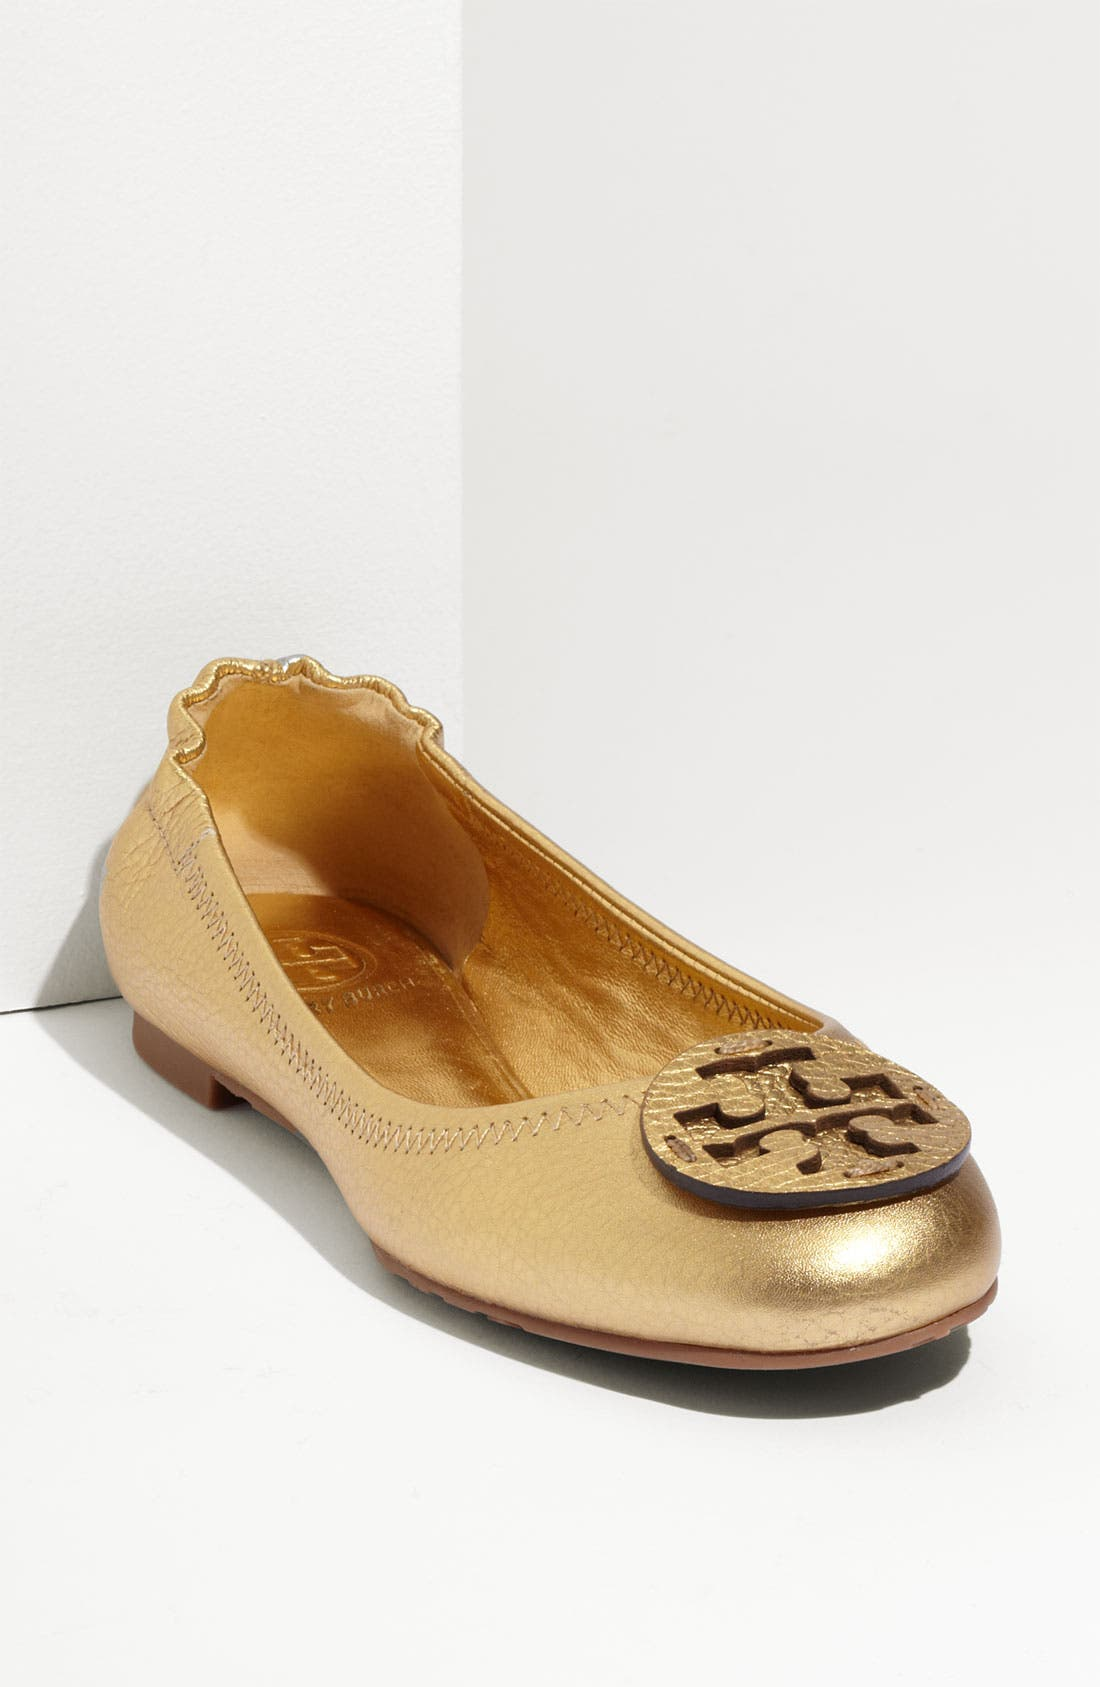 Alternate Image 1 Selected - Tory Burch 'Reva' Metallic Tumbled Flat